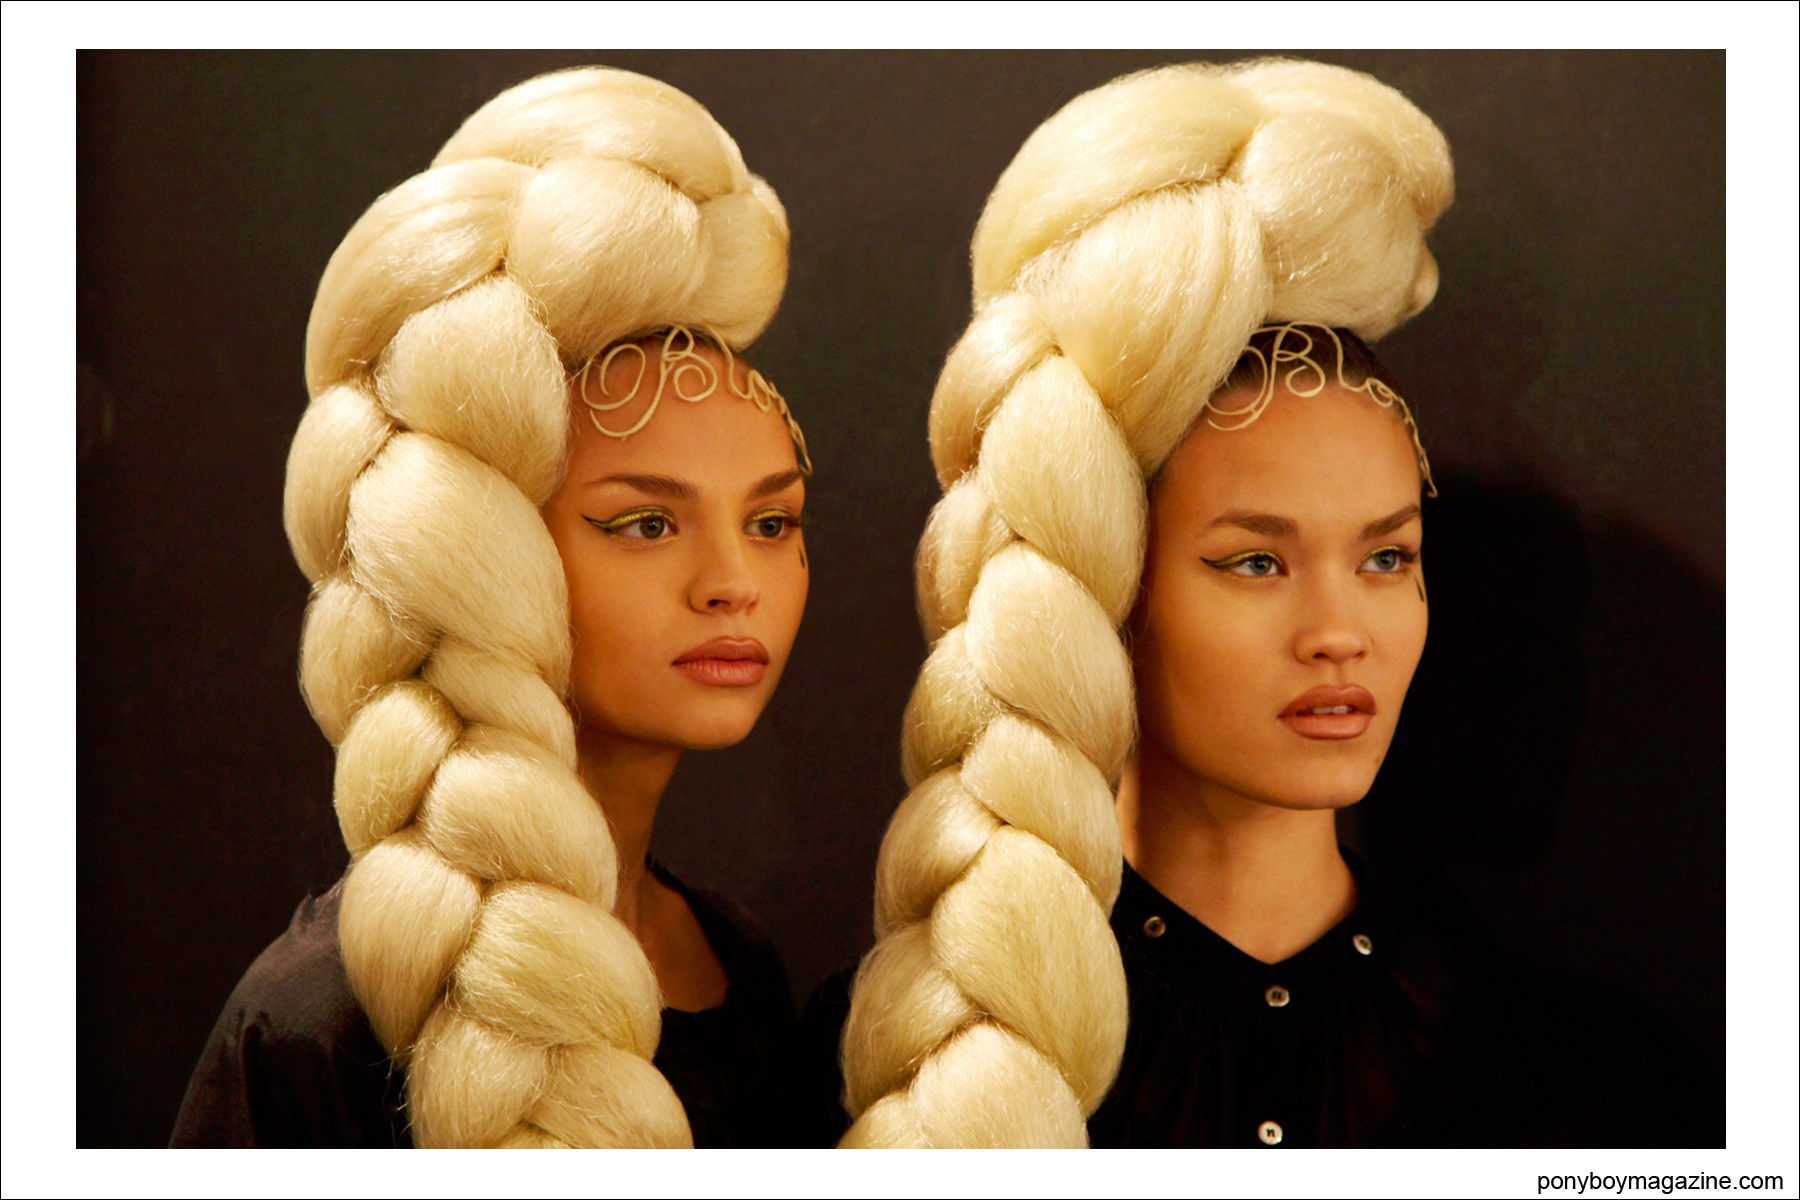 Portrait of two beautiful models, backstage at The Blonds S/S15 in New York City. Photograph by Alexander Thompson for Ponyboy Magazine.